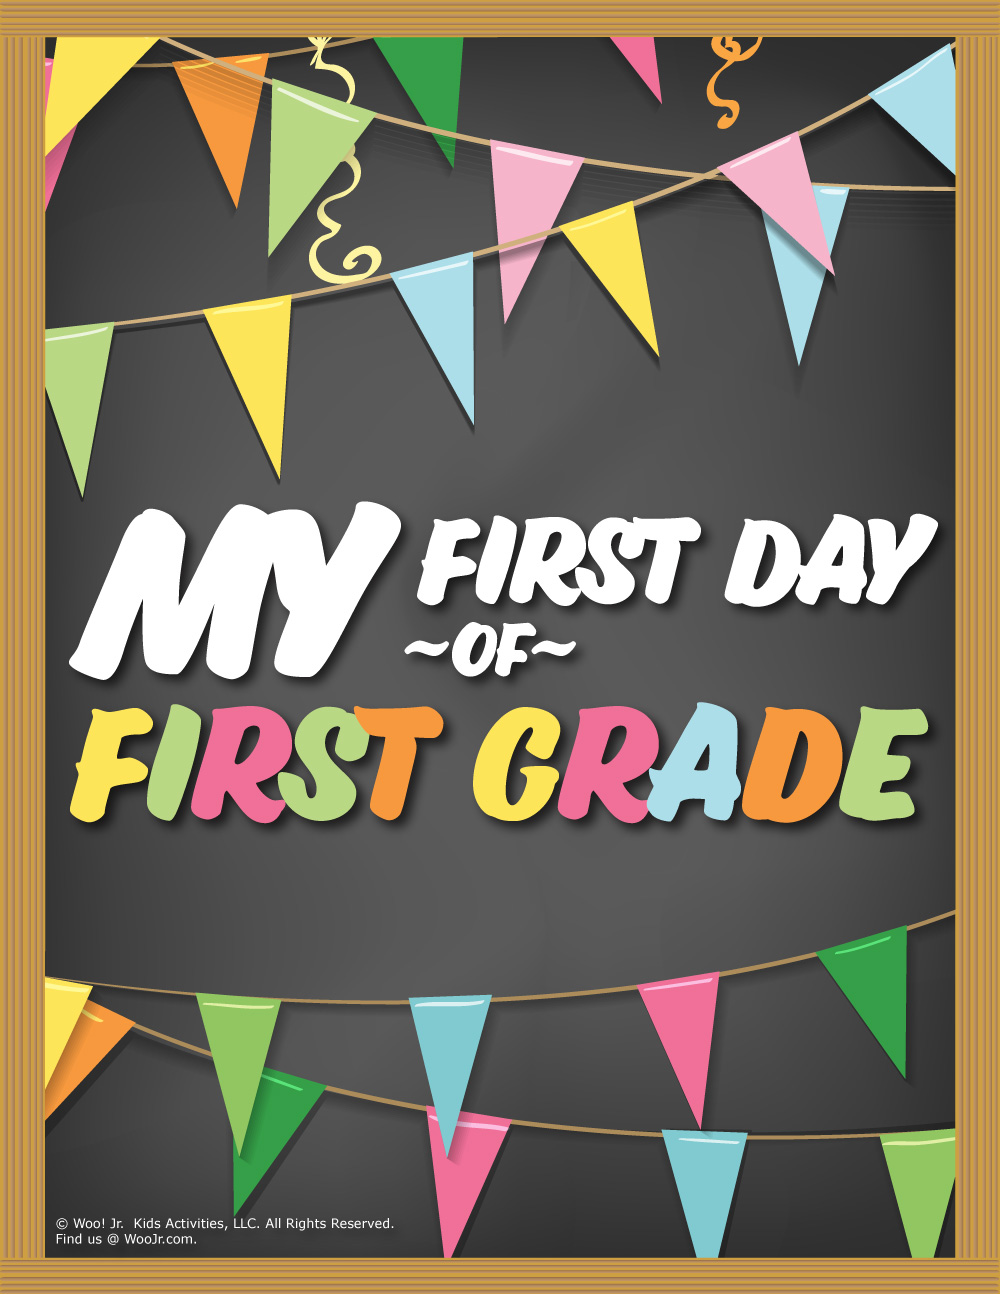 photograph relating to First Day of 1st Grade Printable Sign referred to as Initially Working day of 1st Quality Indication - Chalkboard Woo! Jr. Little ones